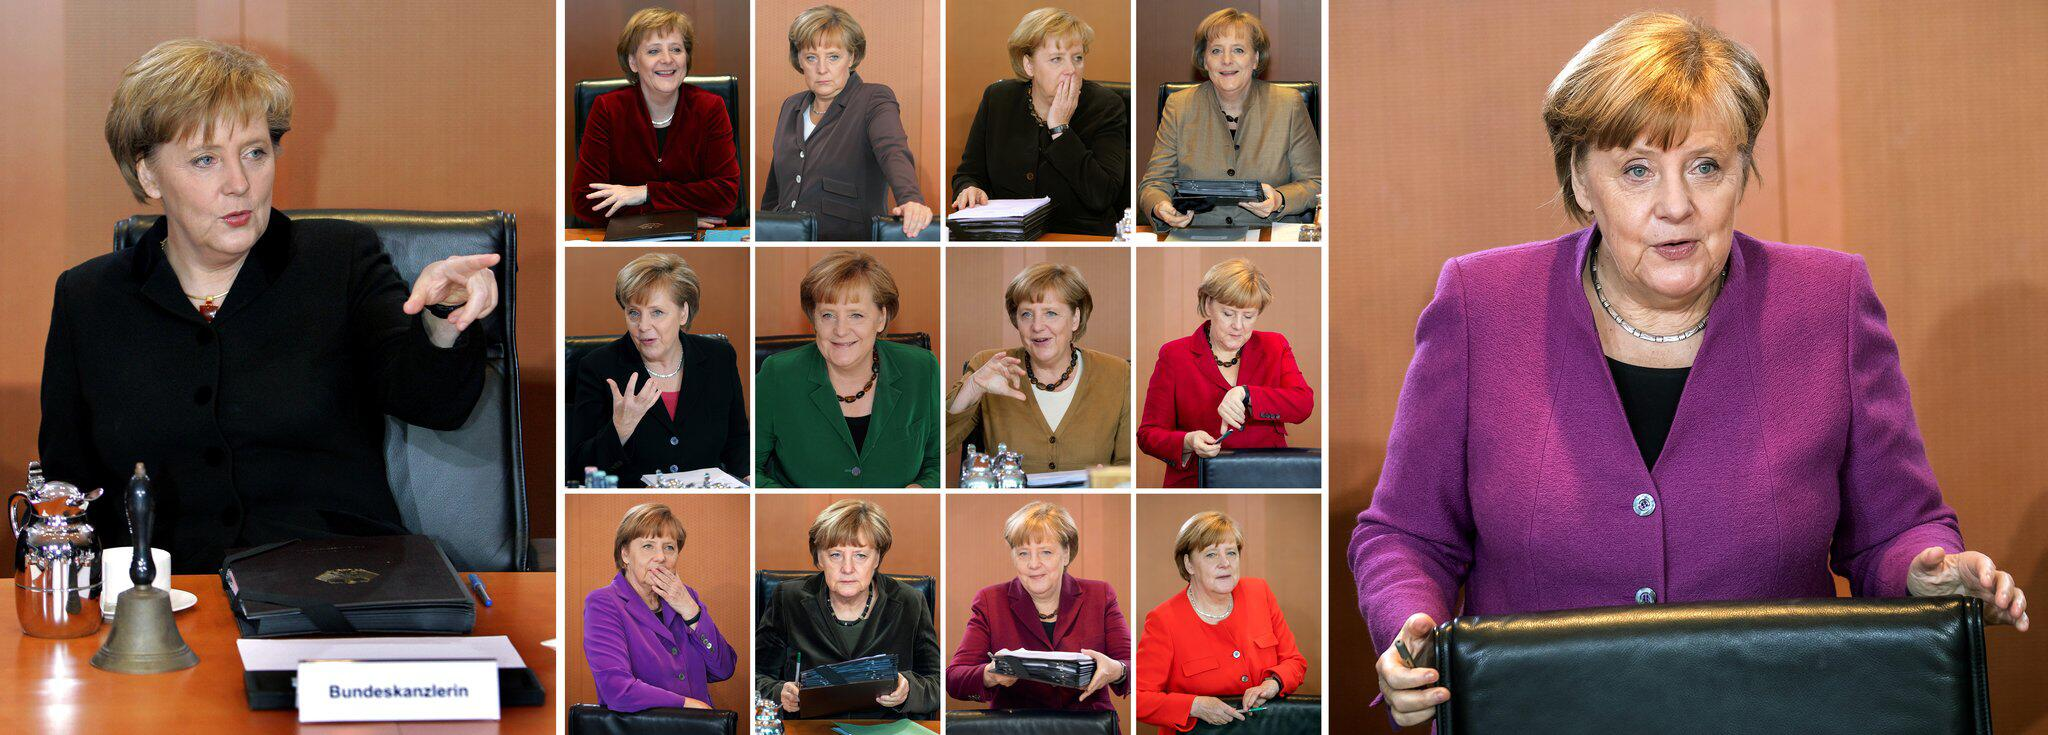 Bild zu Angela Merkel from 2005 to 2018